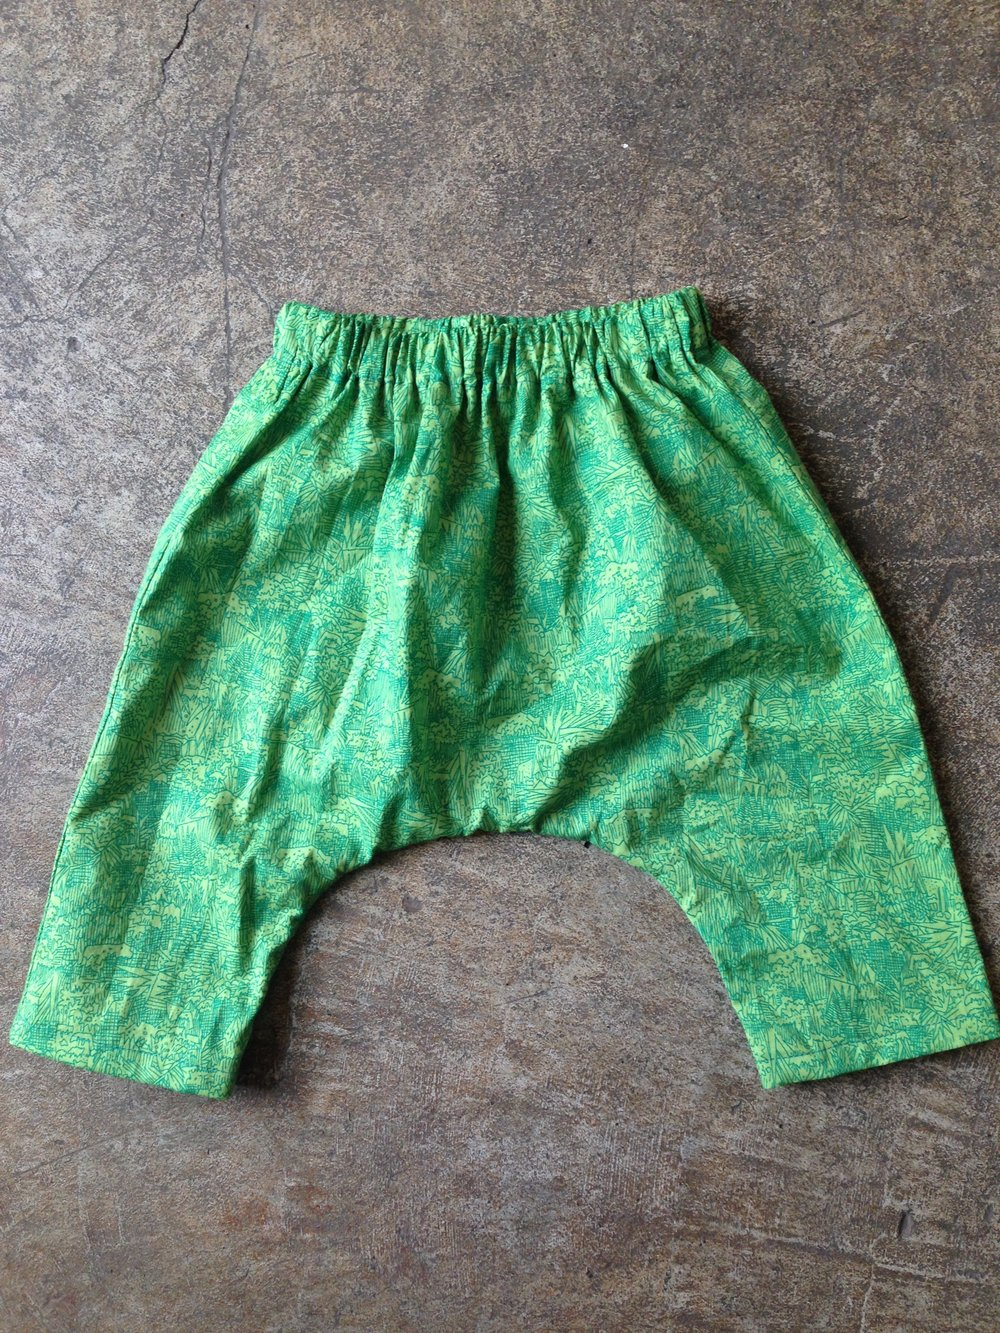 Harem Pants in Carolyn Friedlander cotton lawn